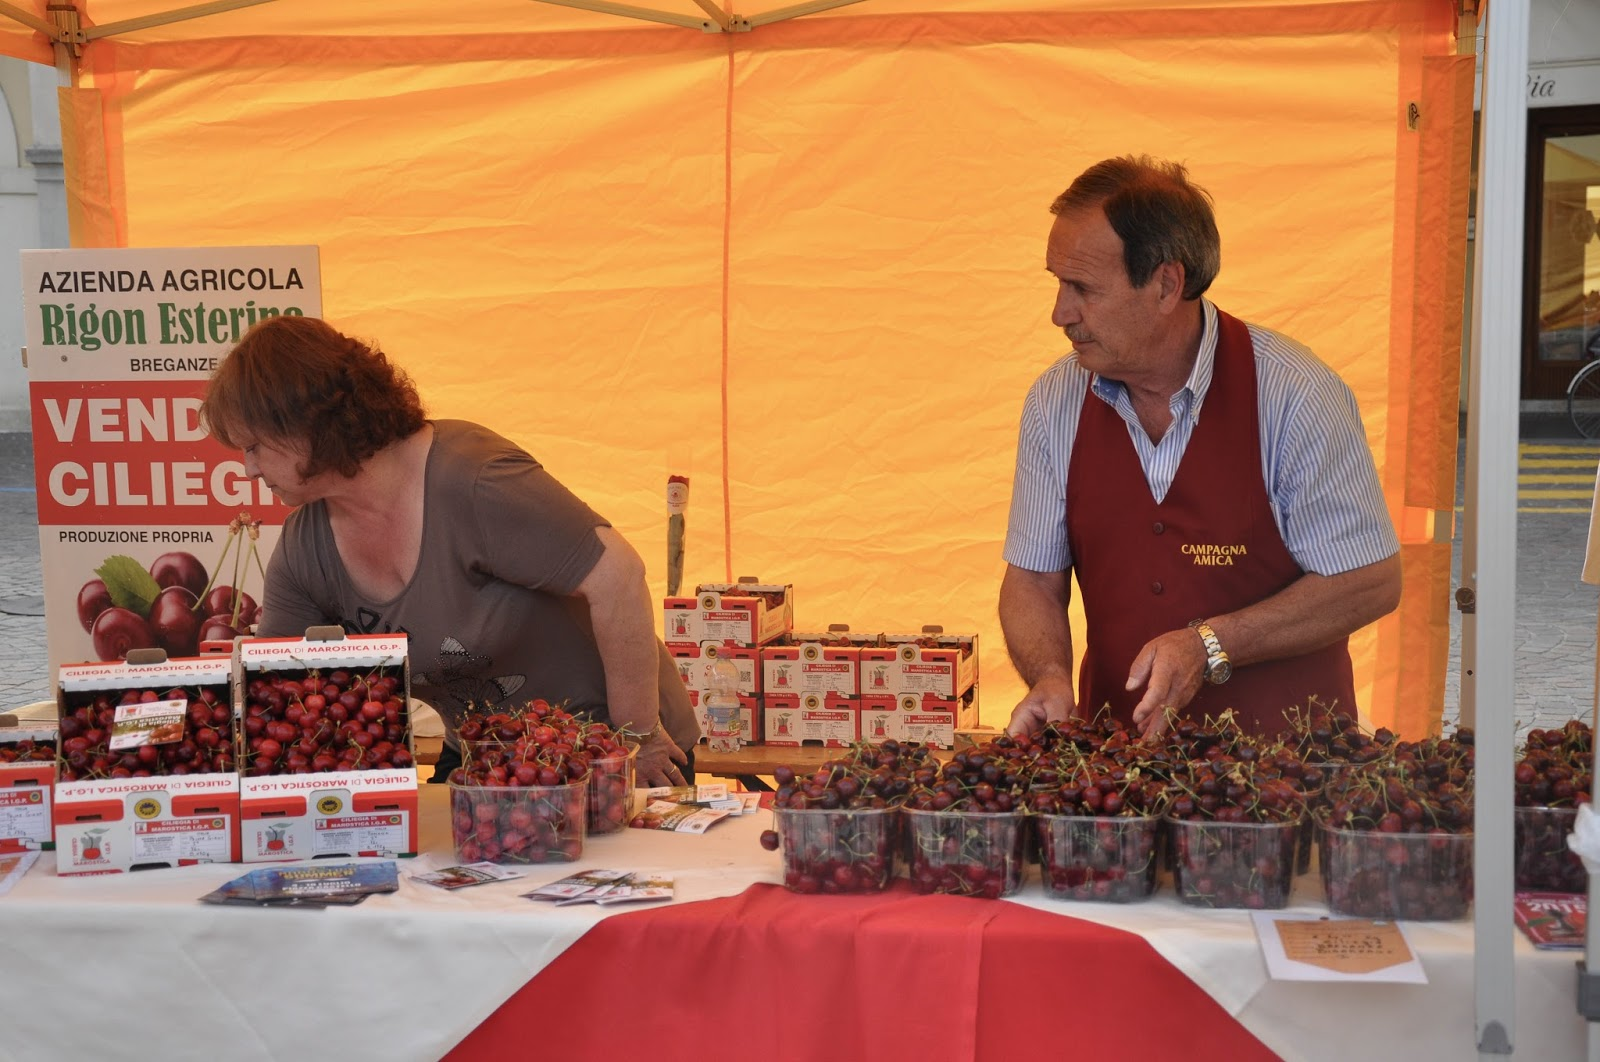 Farmers with their cherries ready for sale, Cherry Show Market, Marostica, Veneto, Italy